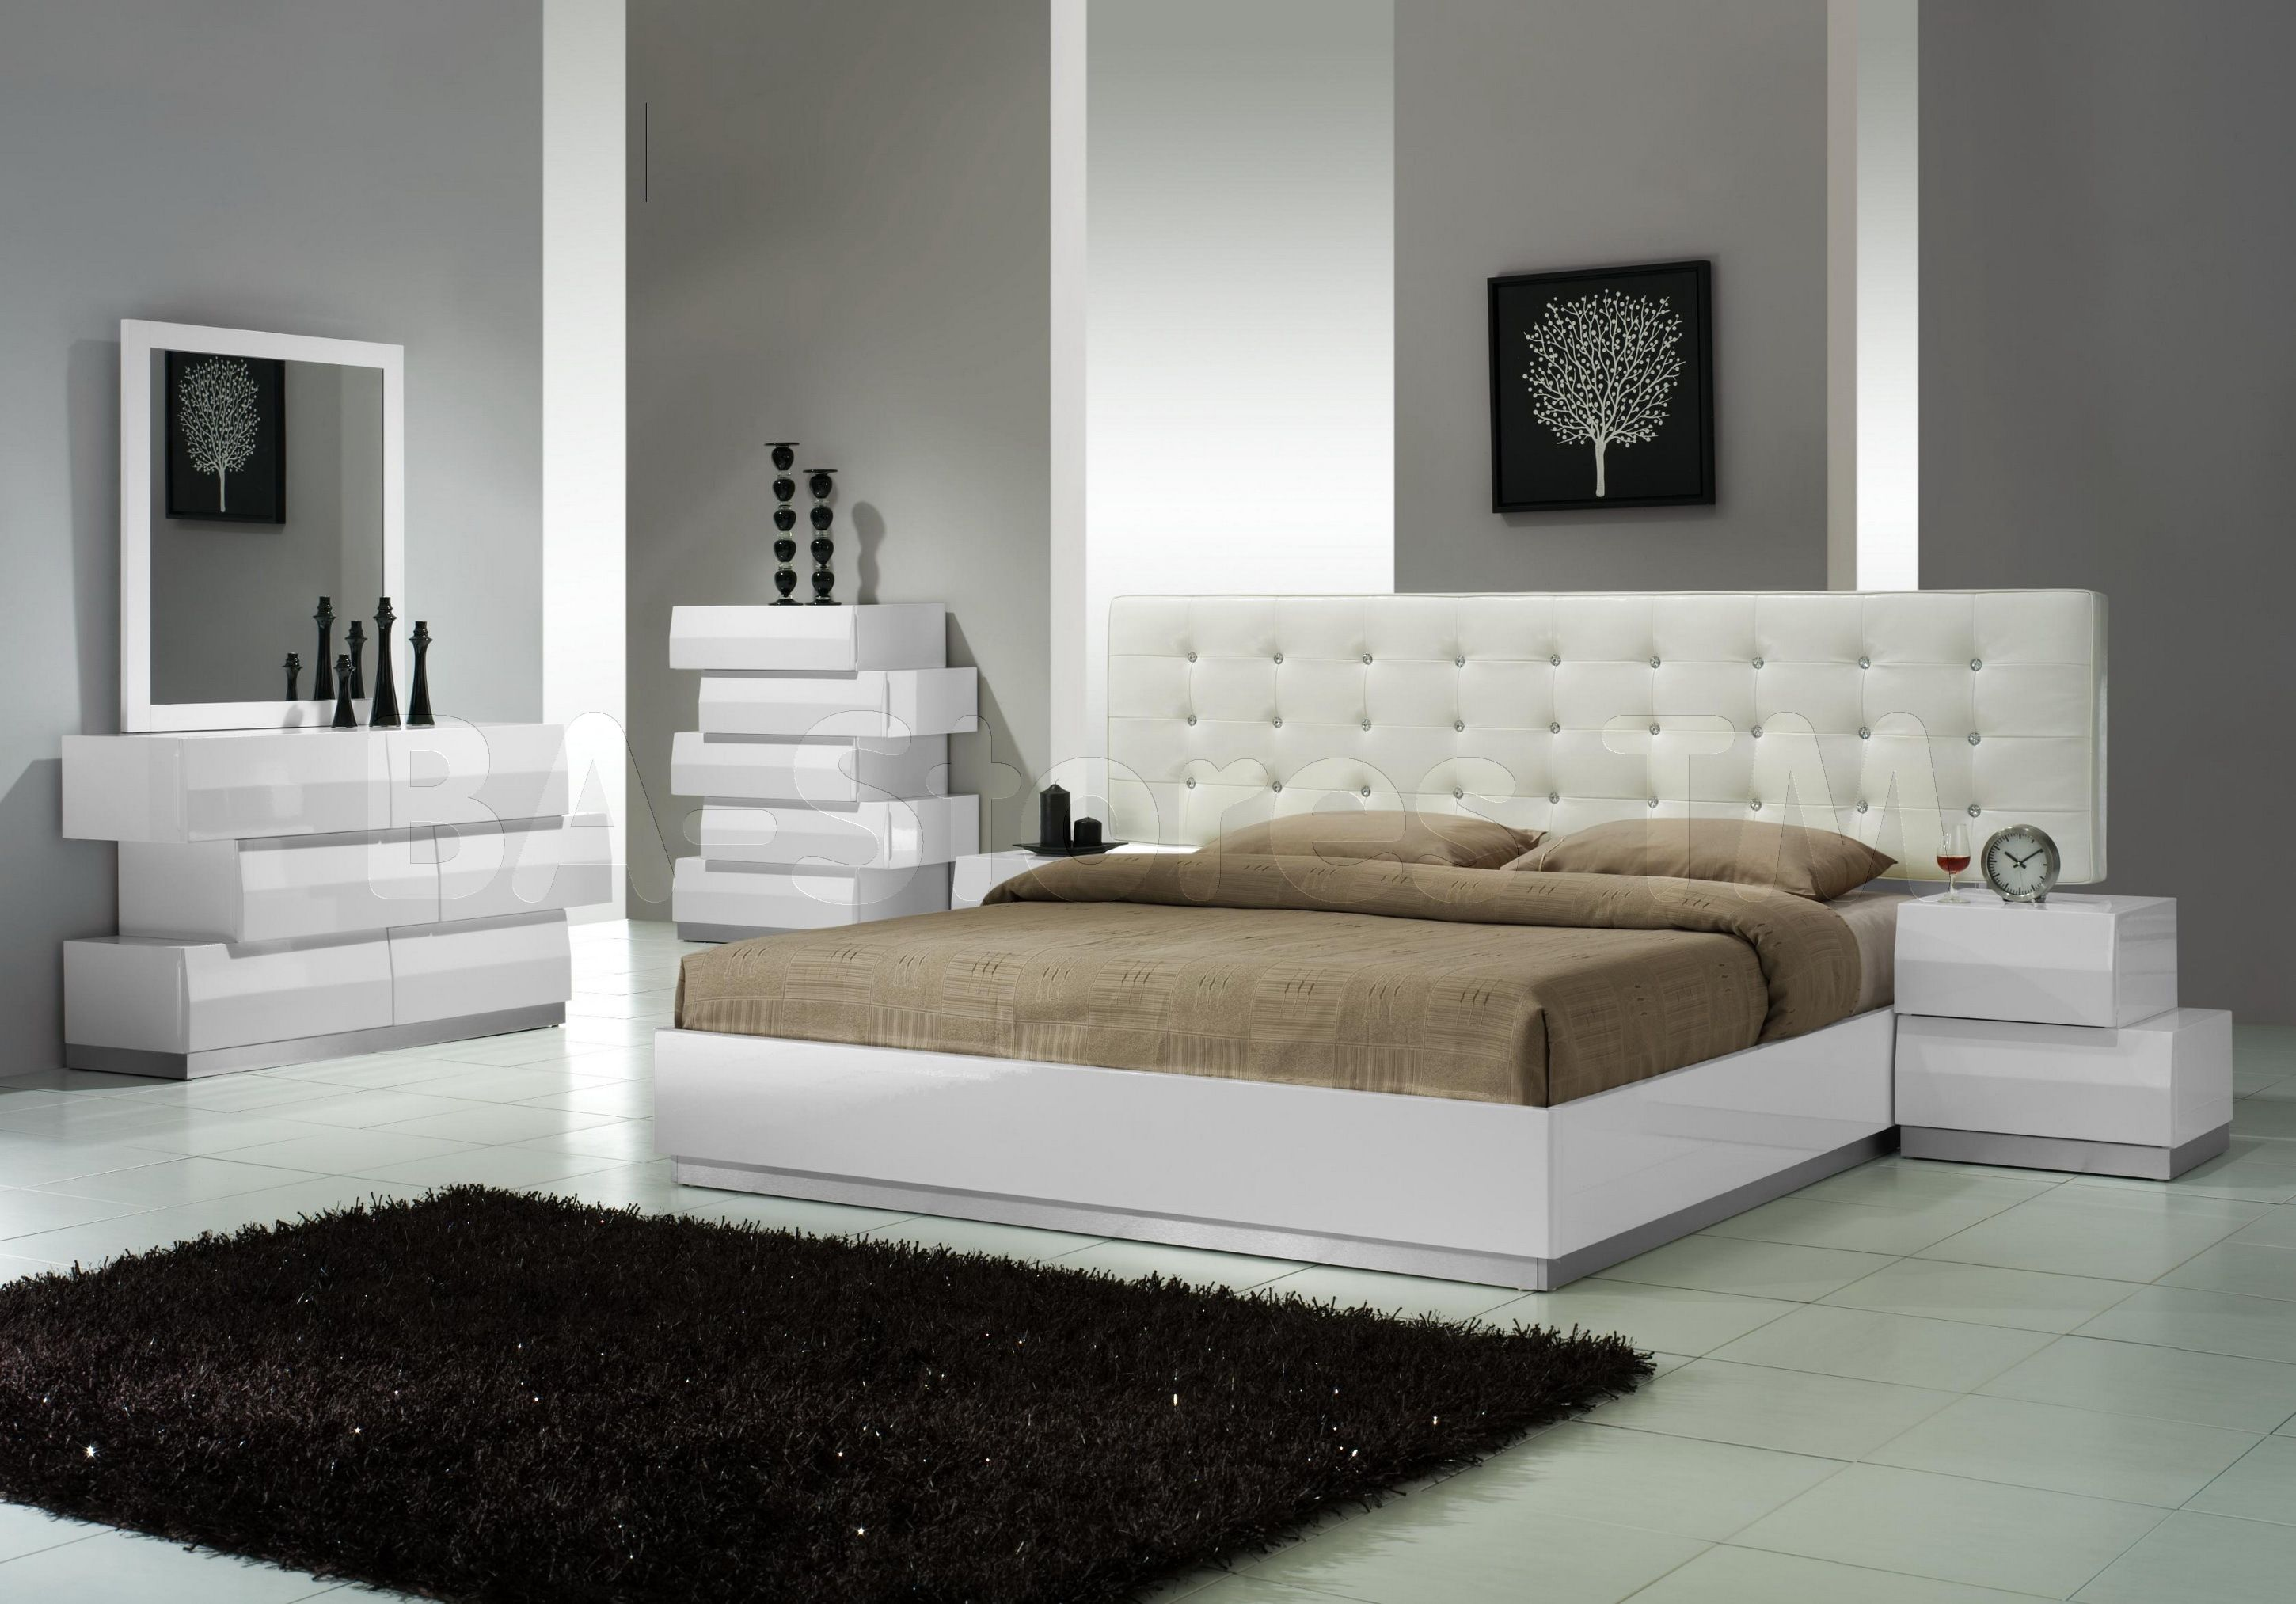 J M Furniture Milan 5 Piece Platform Bedroom Set in White Lacquer 5 Piece  Platform Bedroom Set in White Lacquer belongs to Milan Collection by J M  Furniture. Milan 5 PC Bedroom Set in White Lacquered Finish by J M   Bedroom